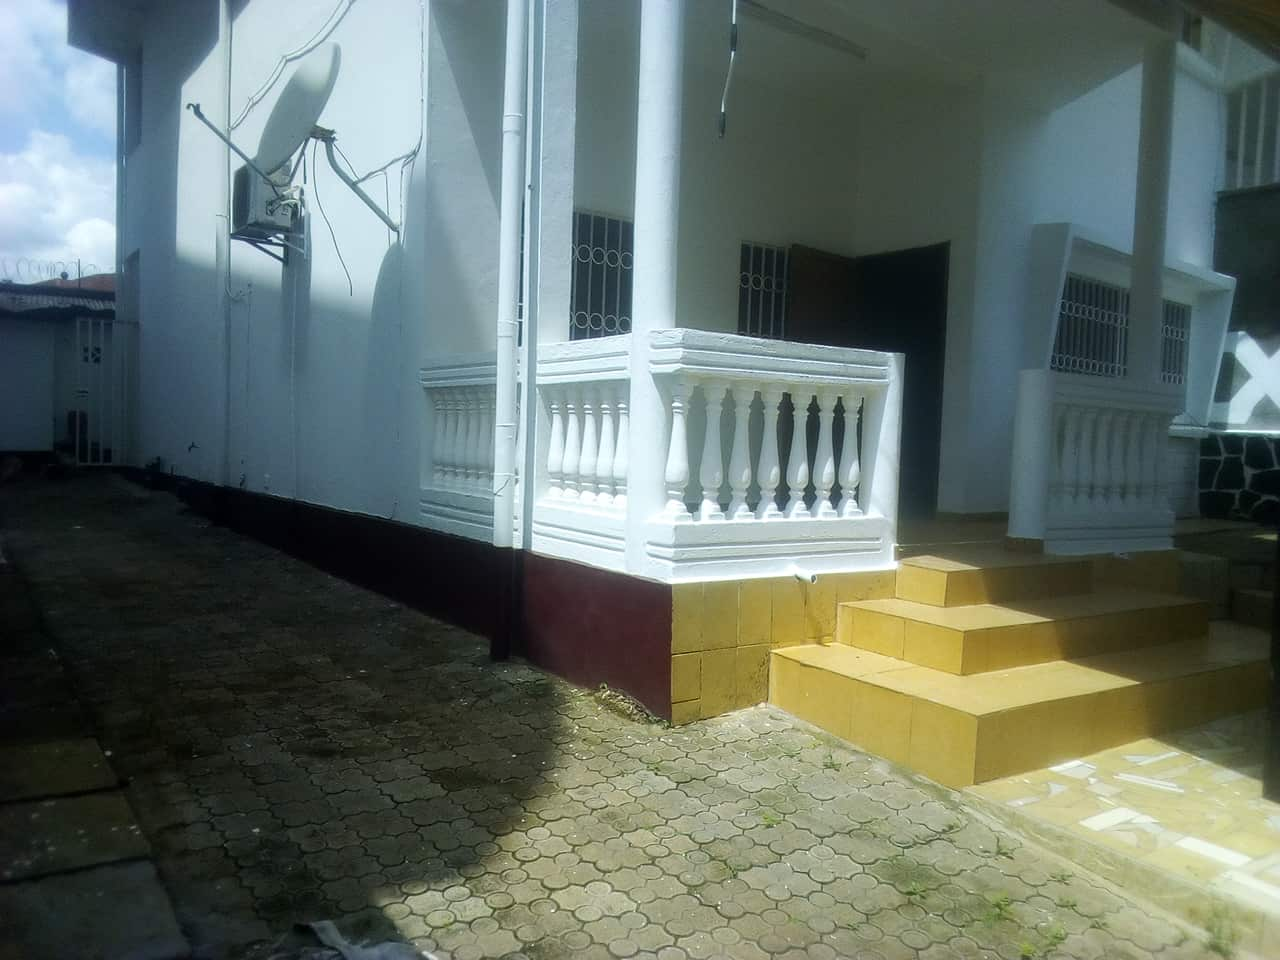 House (Villa) to rent - Yaoundé, Bastos, pas loin de dovv - 1 living room(s), 4 bedroom(s), 3 bathroom(s) - 800 000 FCFA / month